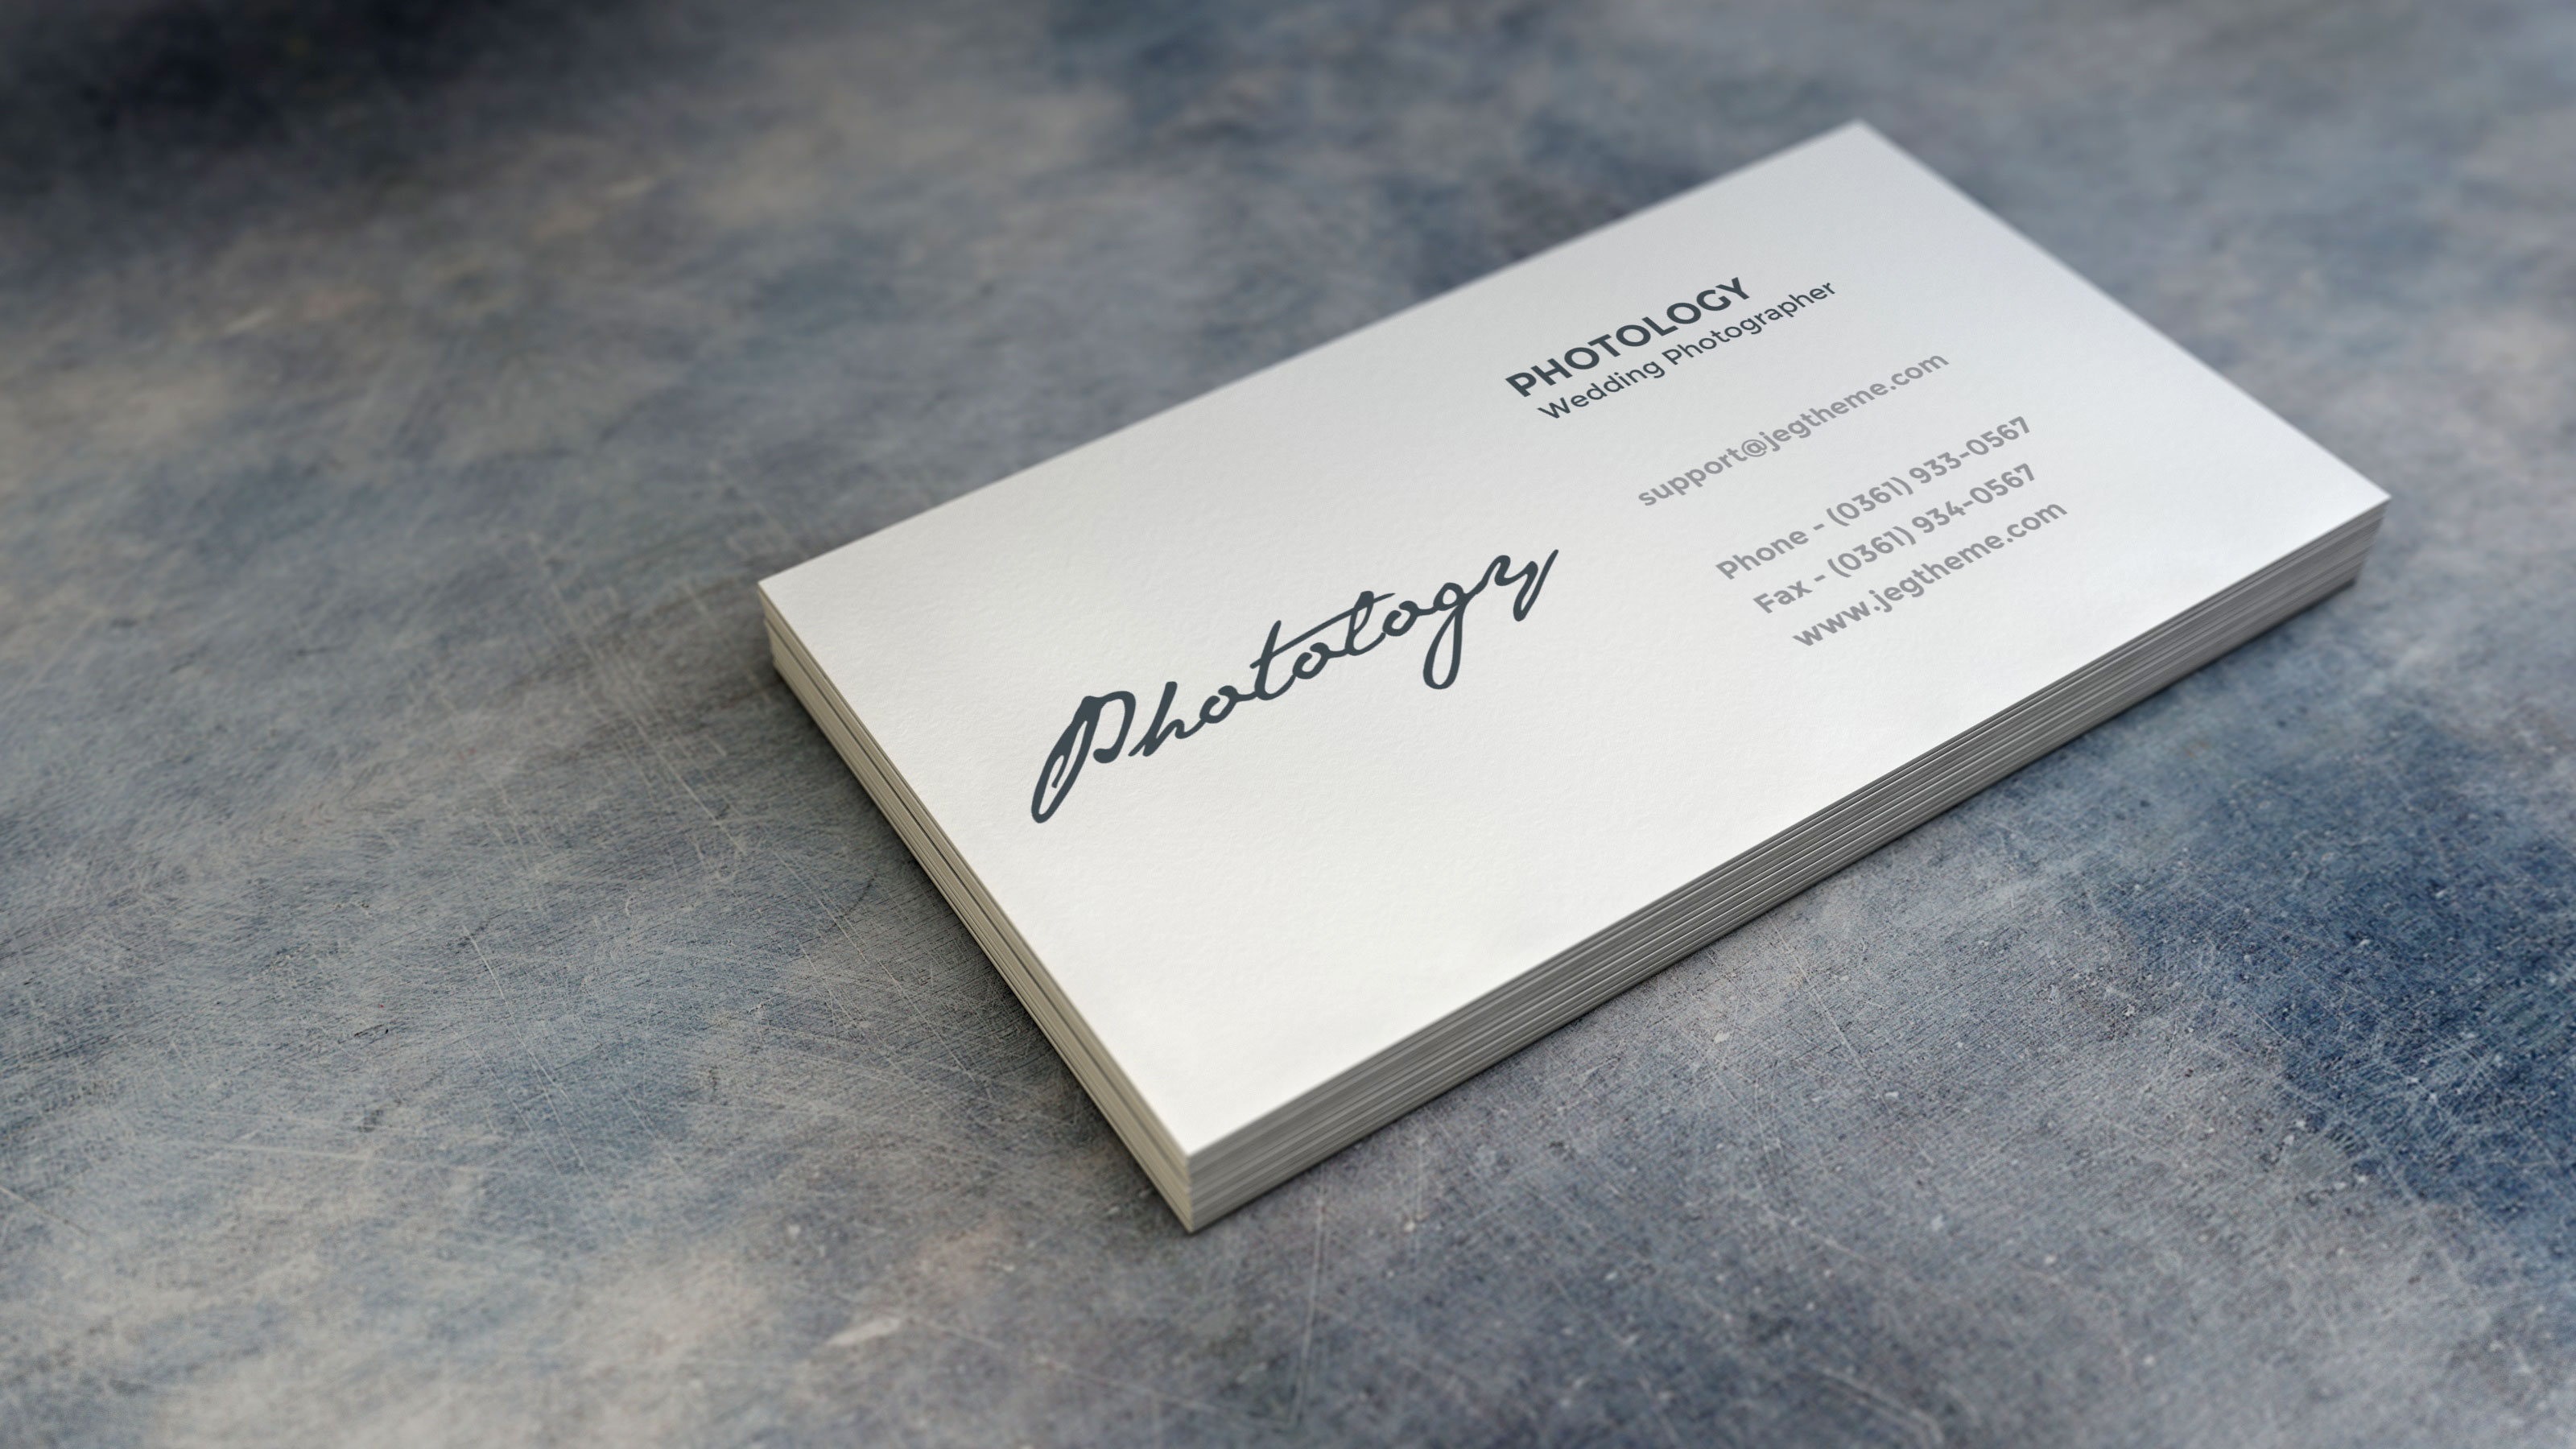 Stunning Steve Jobs Business Card Pictures Inspiration - Business ...